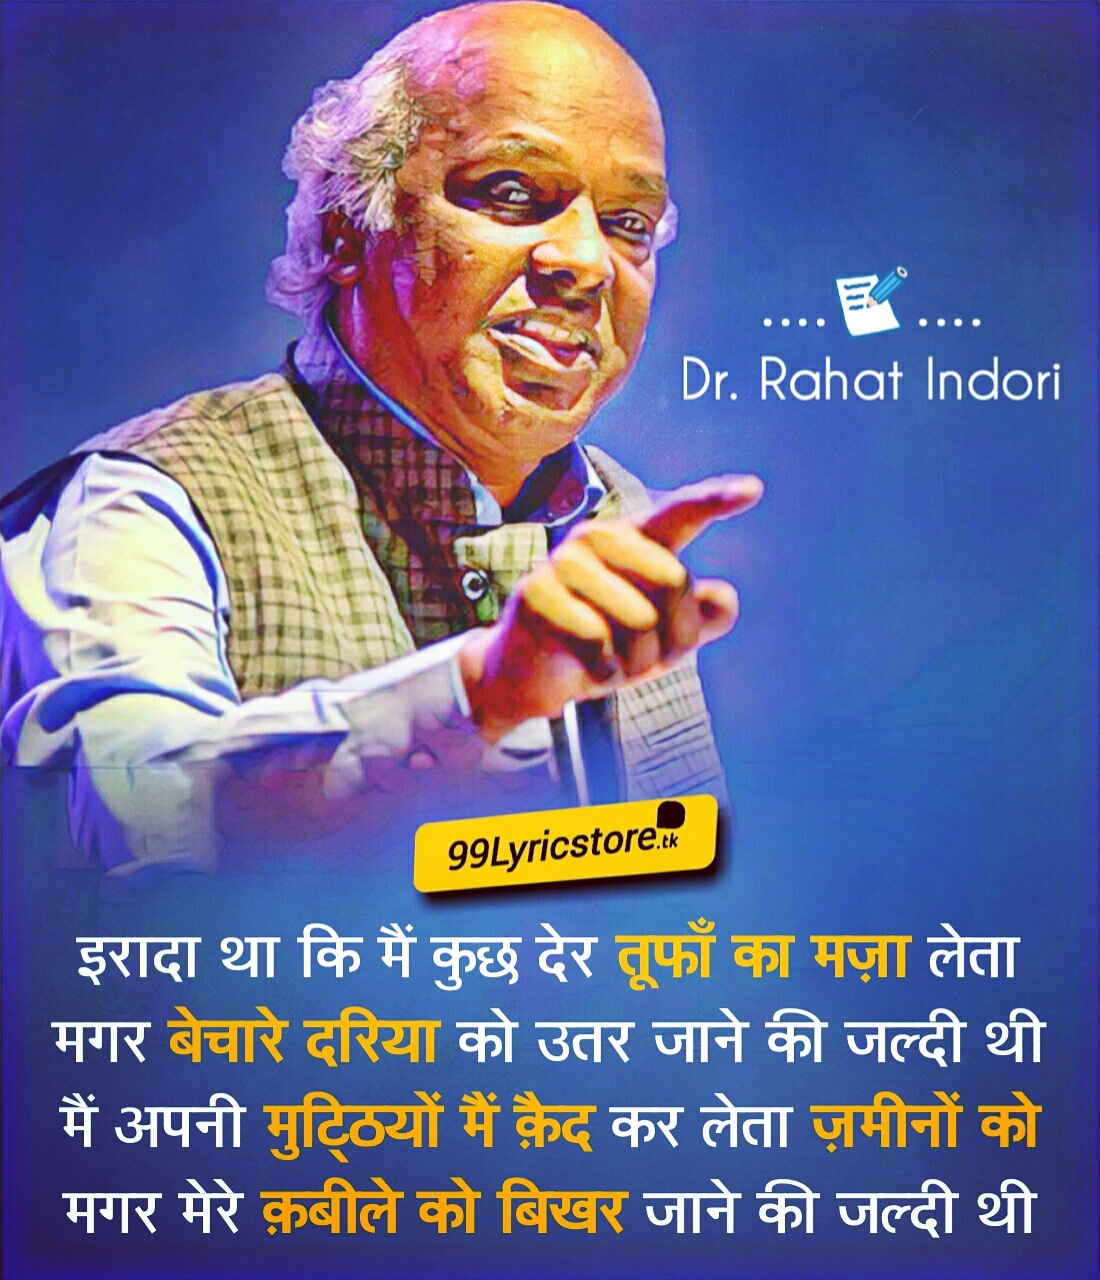 Use Ab Ke Wafaon Se Guzar Jaane Ki Jaldi Thi written and performed by Rahat Indori, this poetry is best Shayari and Ghazal of Rahat Indori.